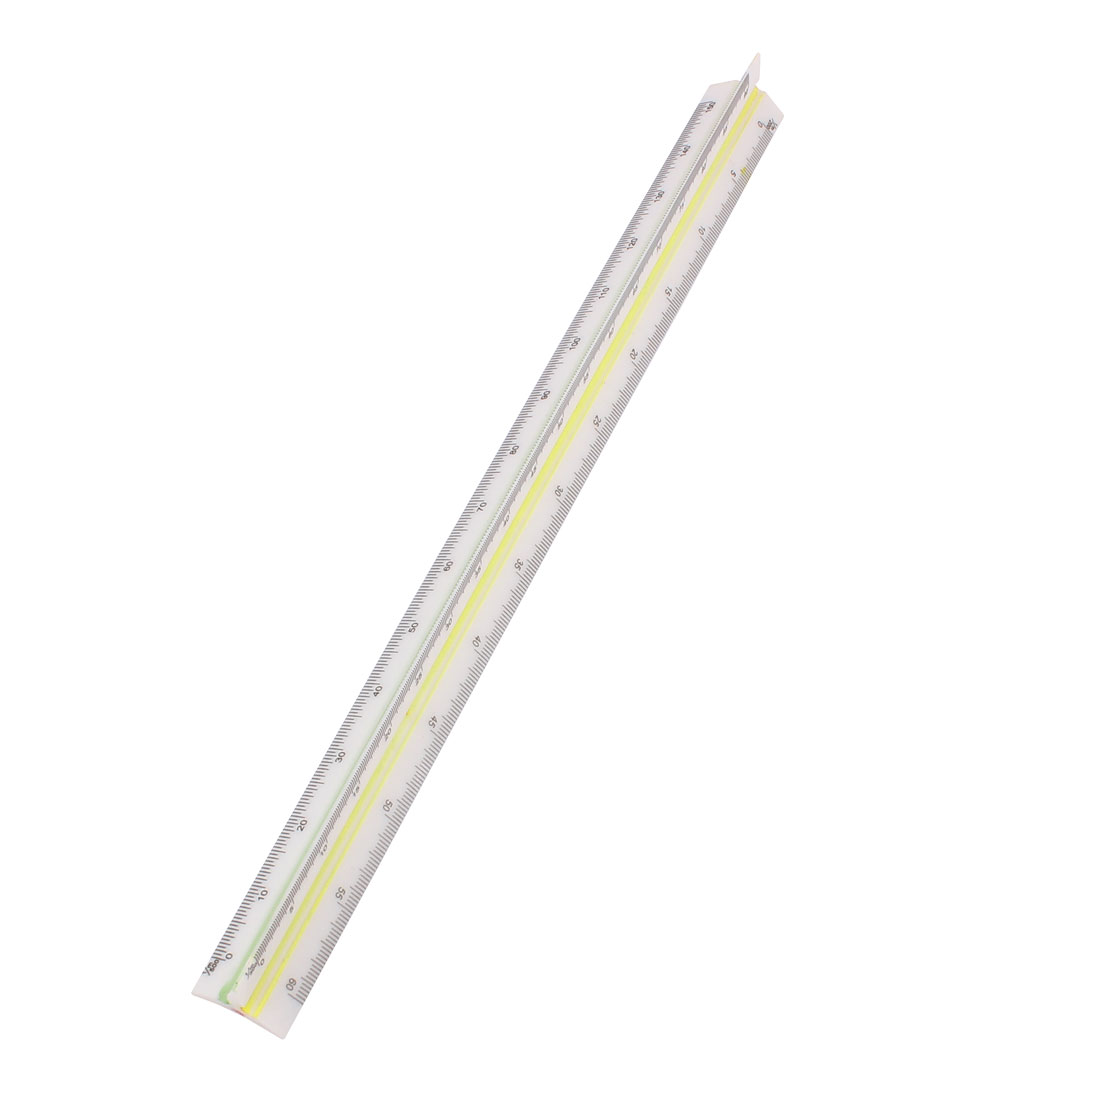 1:100 1:200 1:250 1:300 1:400 1:500 Metric Triangular Scale Measuring Ruler Yellow Red Green